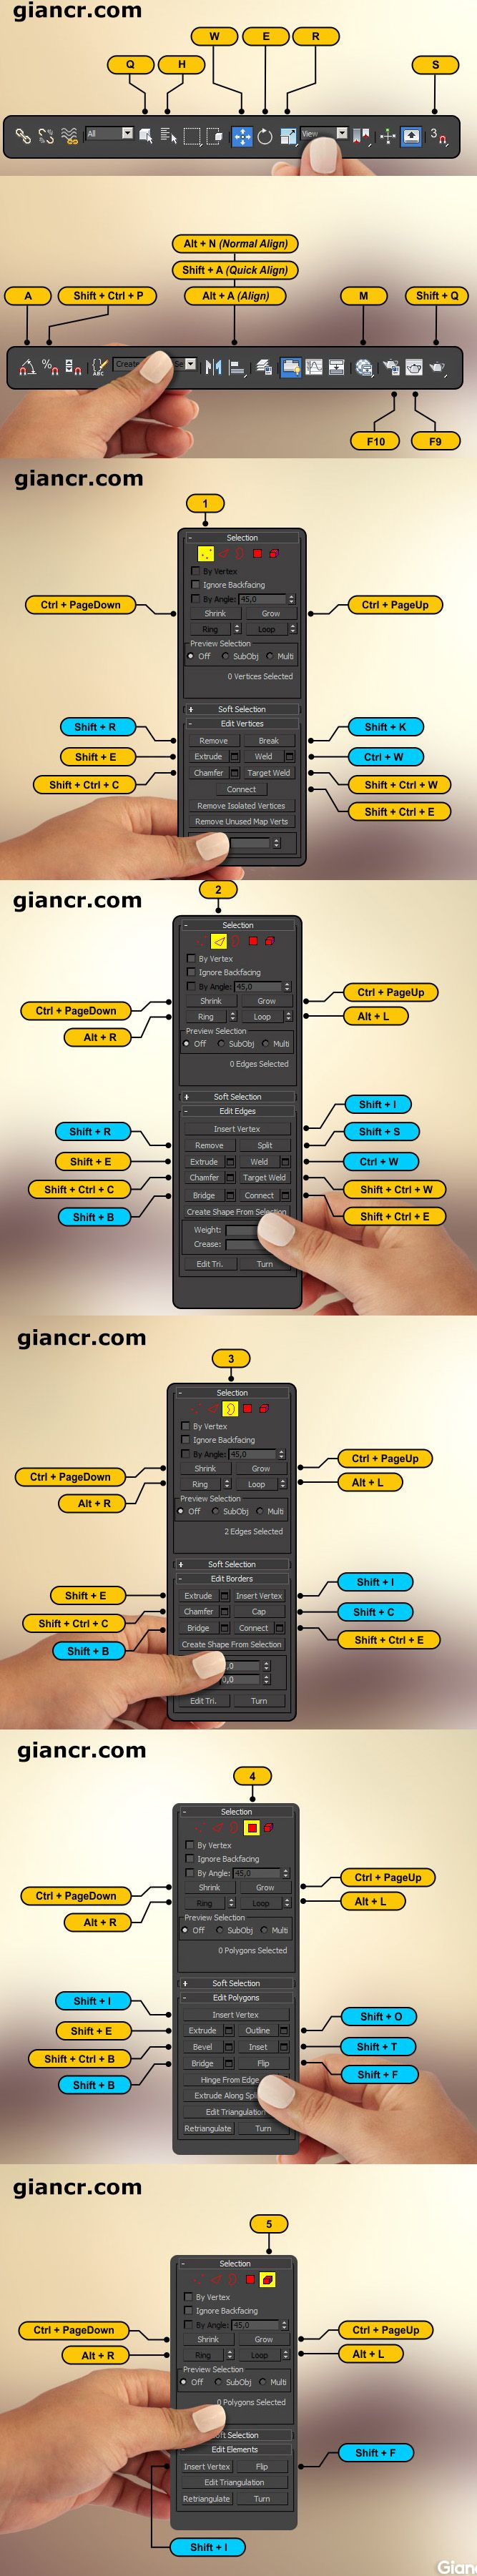 default hot keys for max  http://giancr.com  shortcuts, tutorials, resources at > http://giancr.com